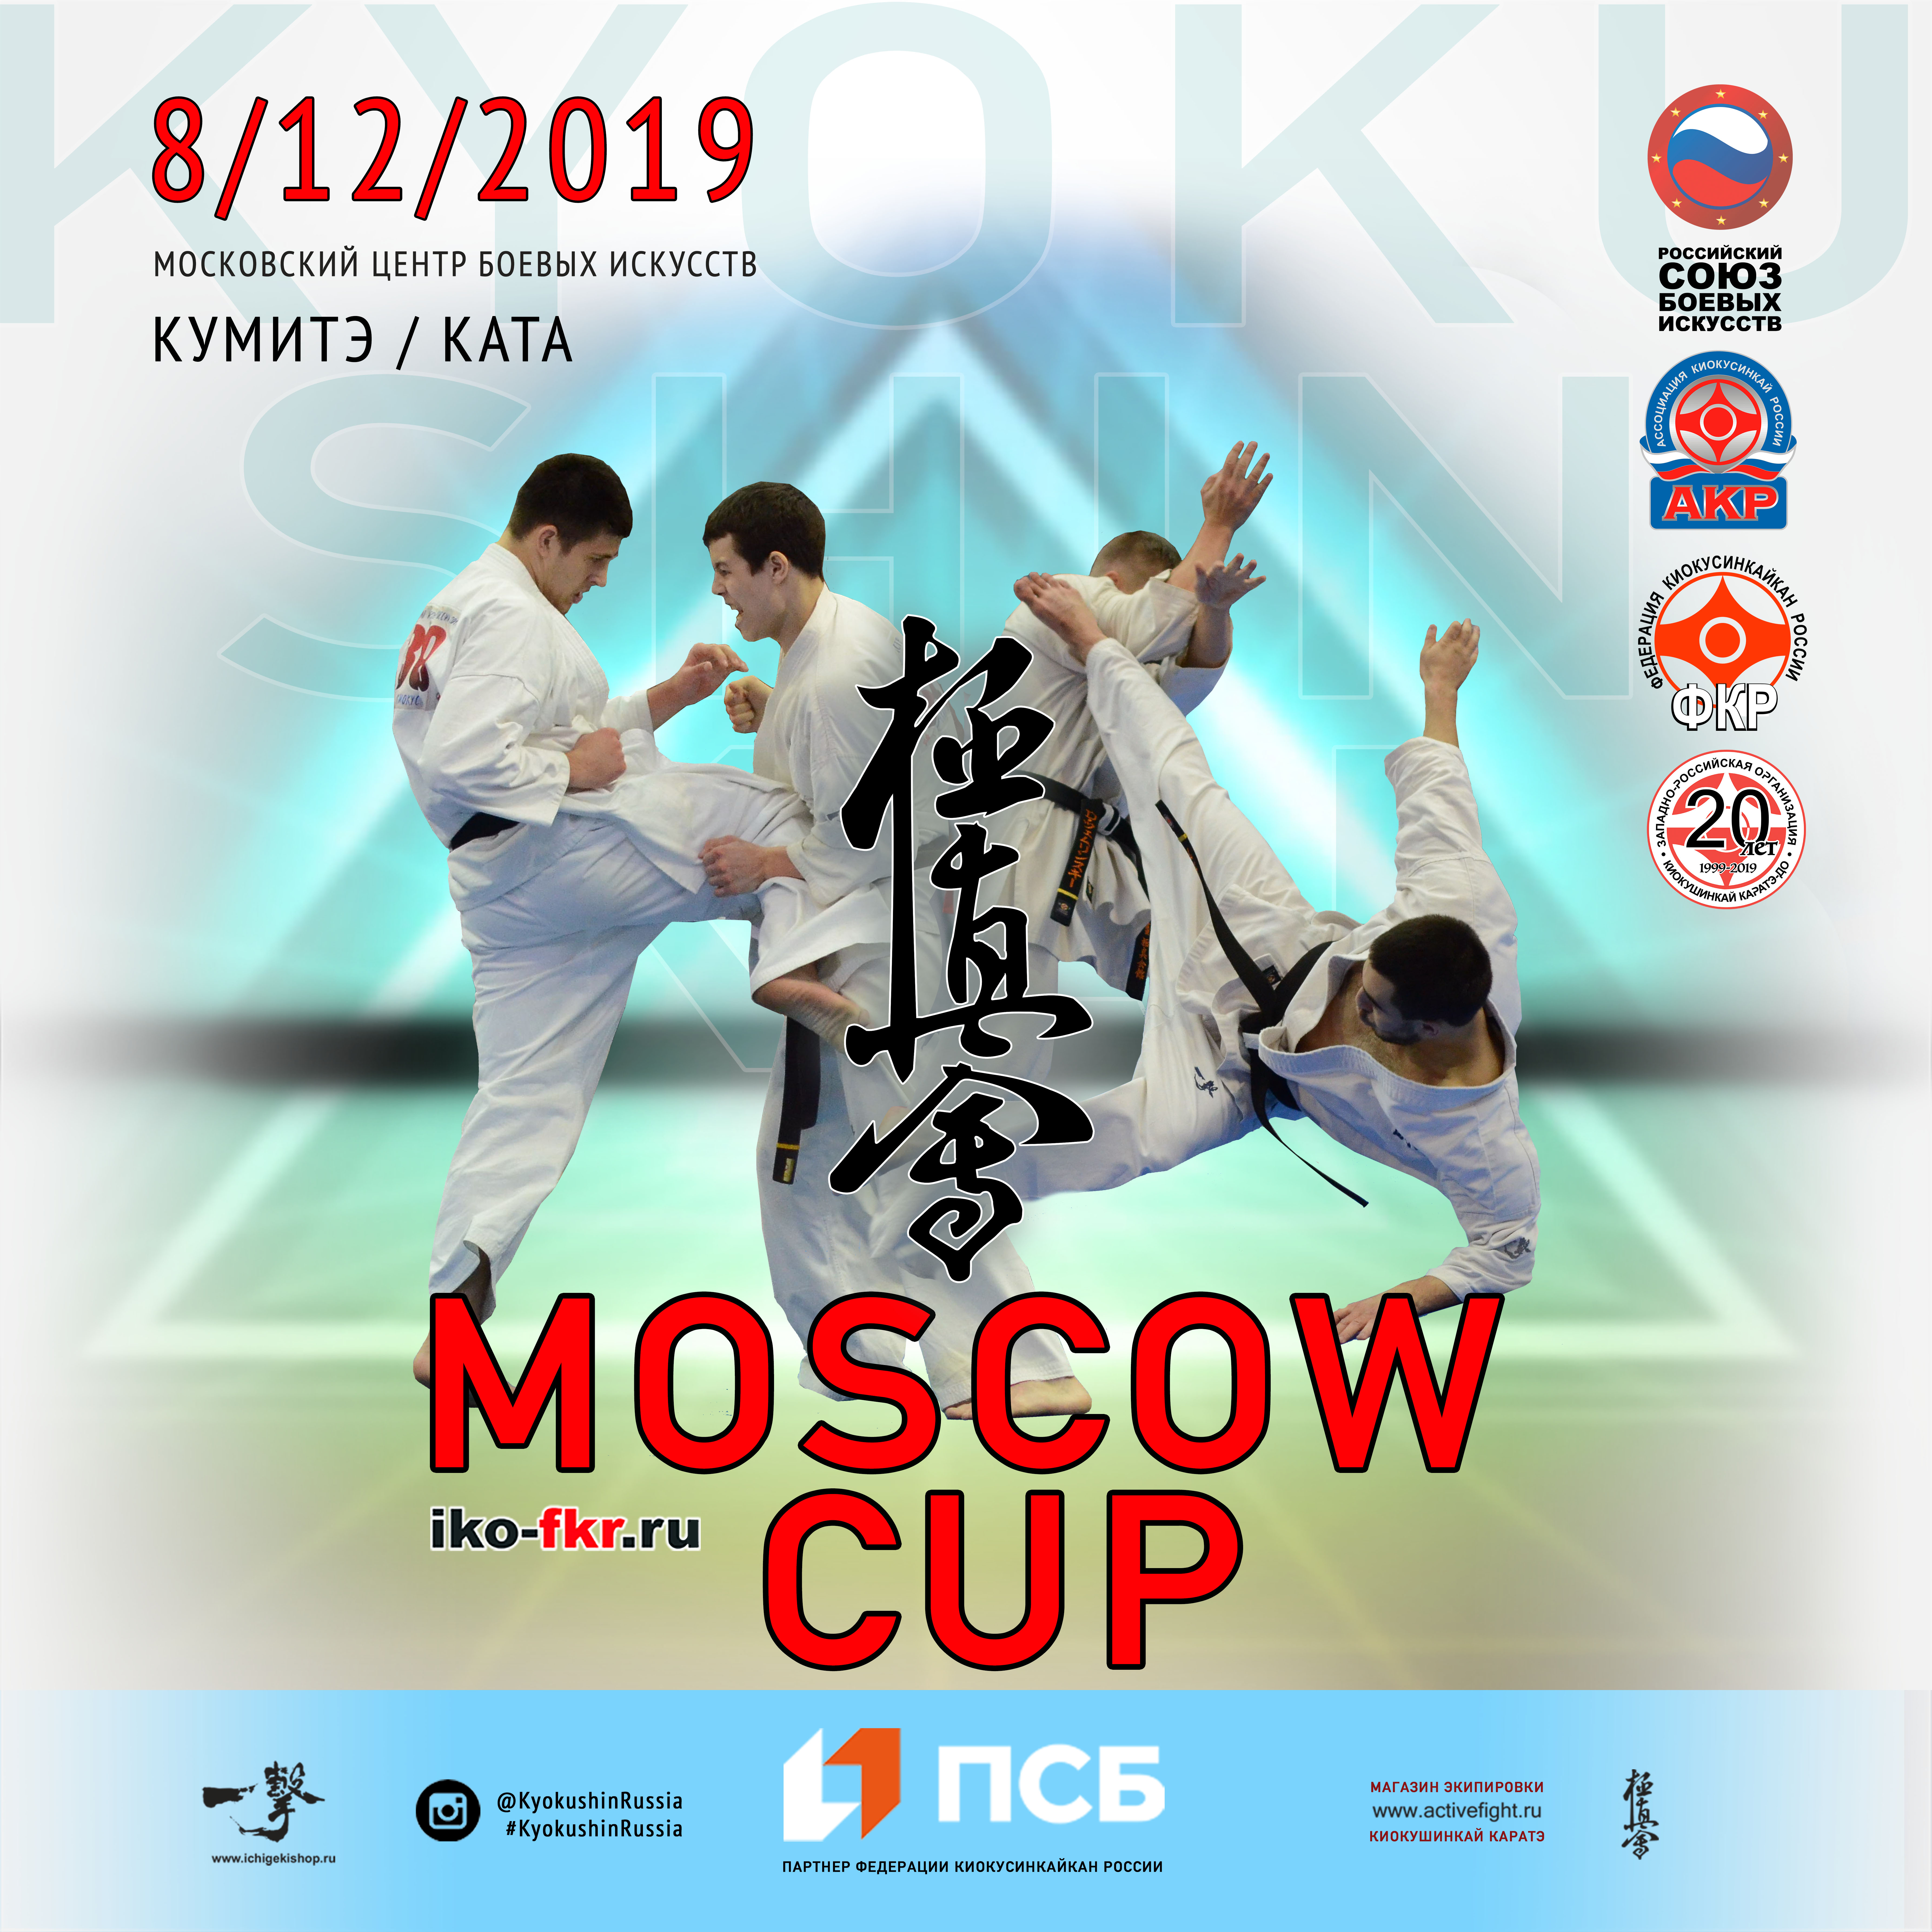 Moscow Cup 2019